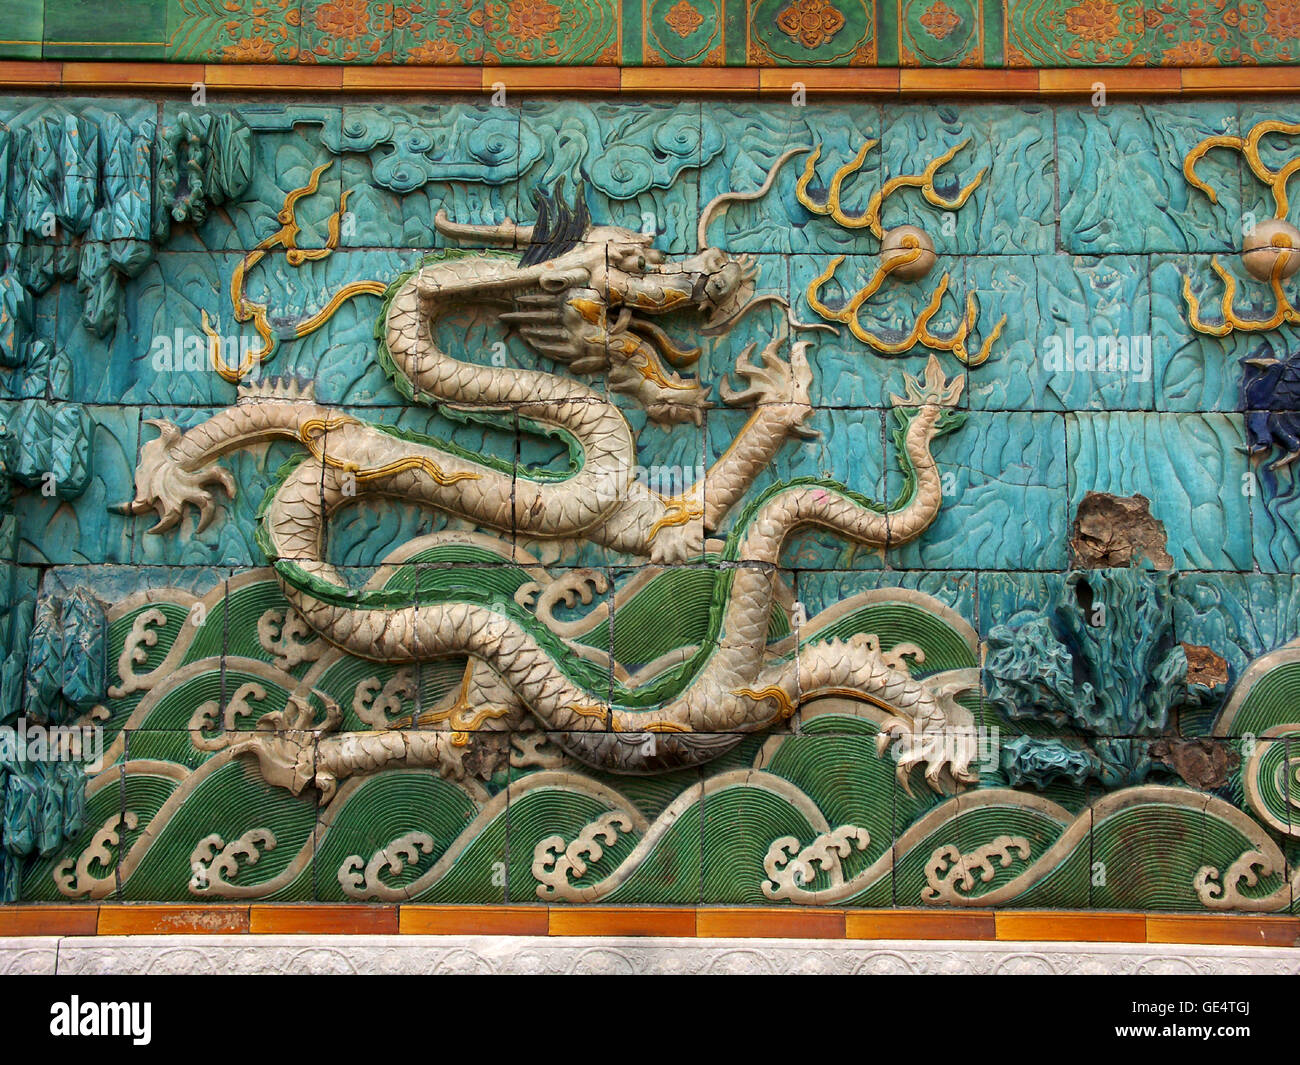 Nine Dragon Wall: The Nine-Dragon Wall In The Forbidden City Palace Of The